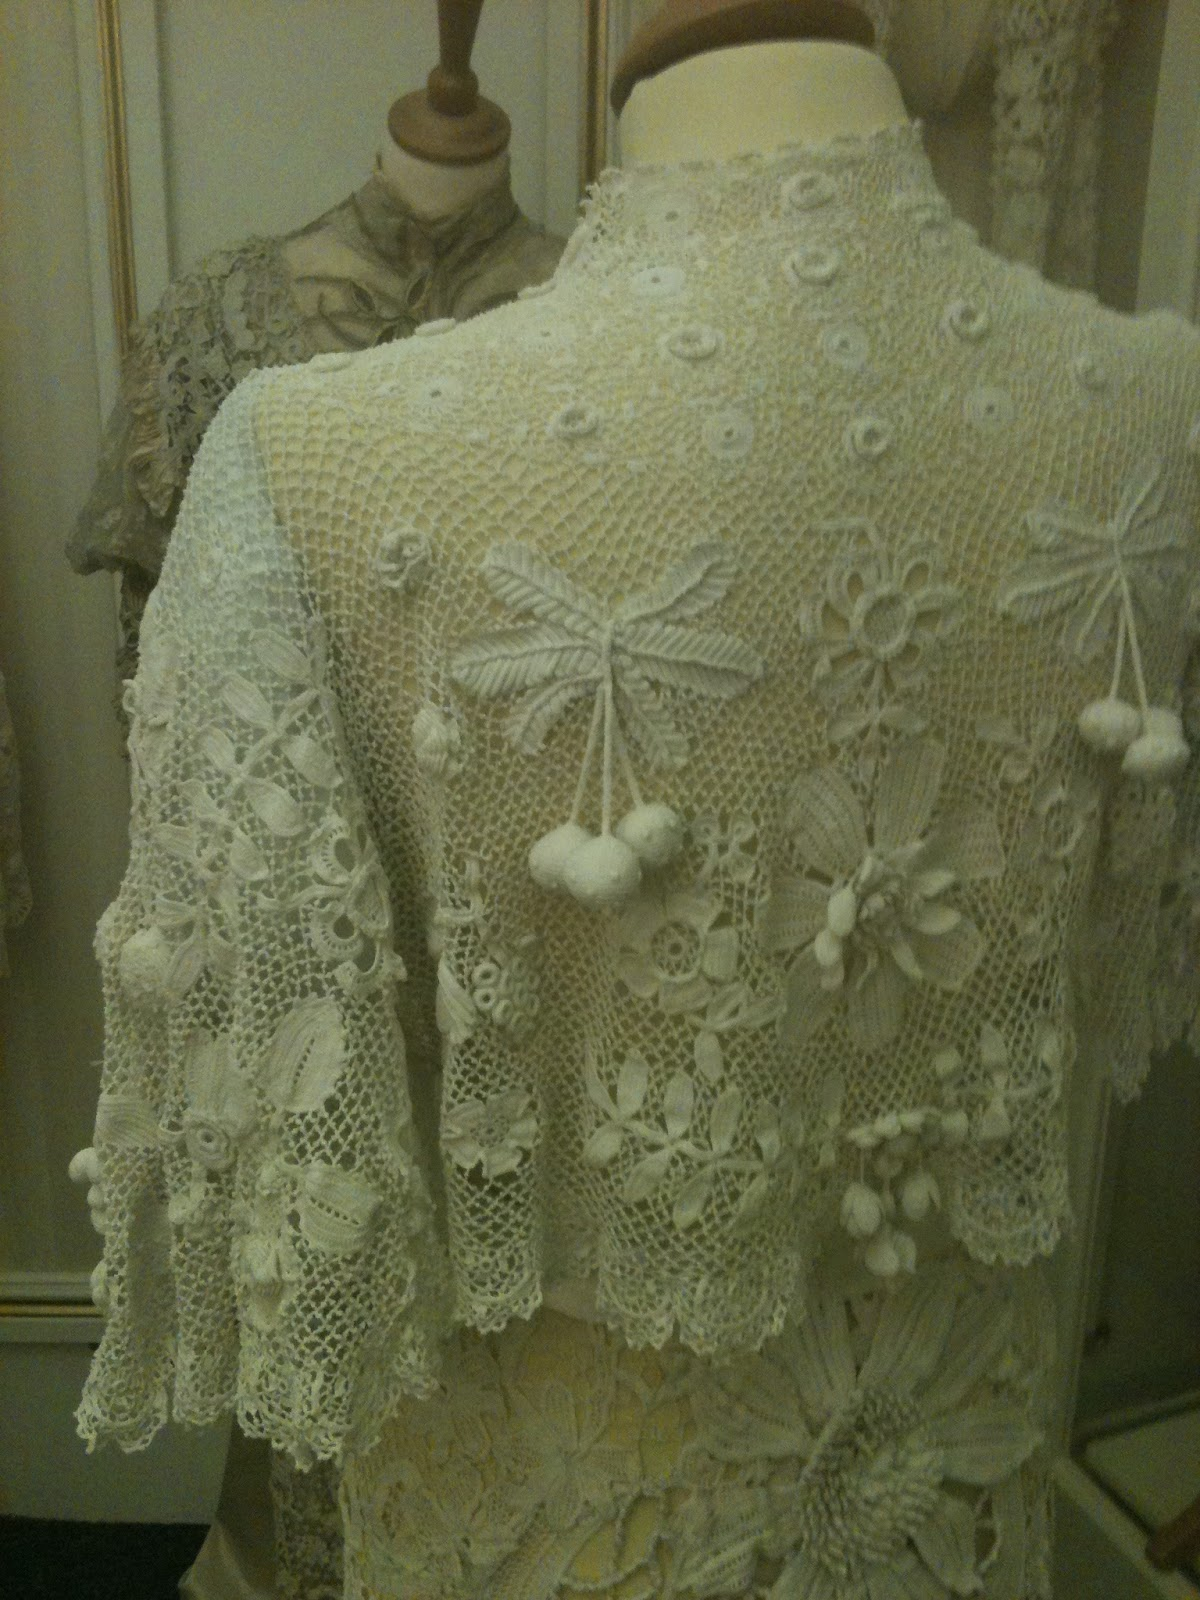 Rosemary Cathcart Antique Lace and Vintage Fashion The